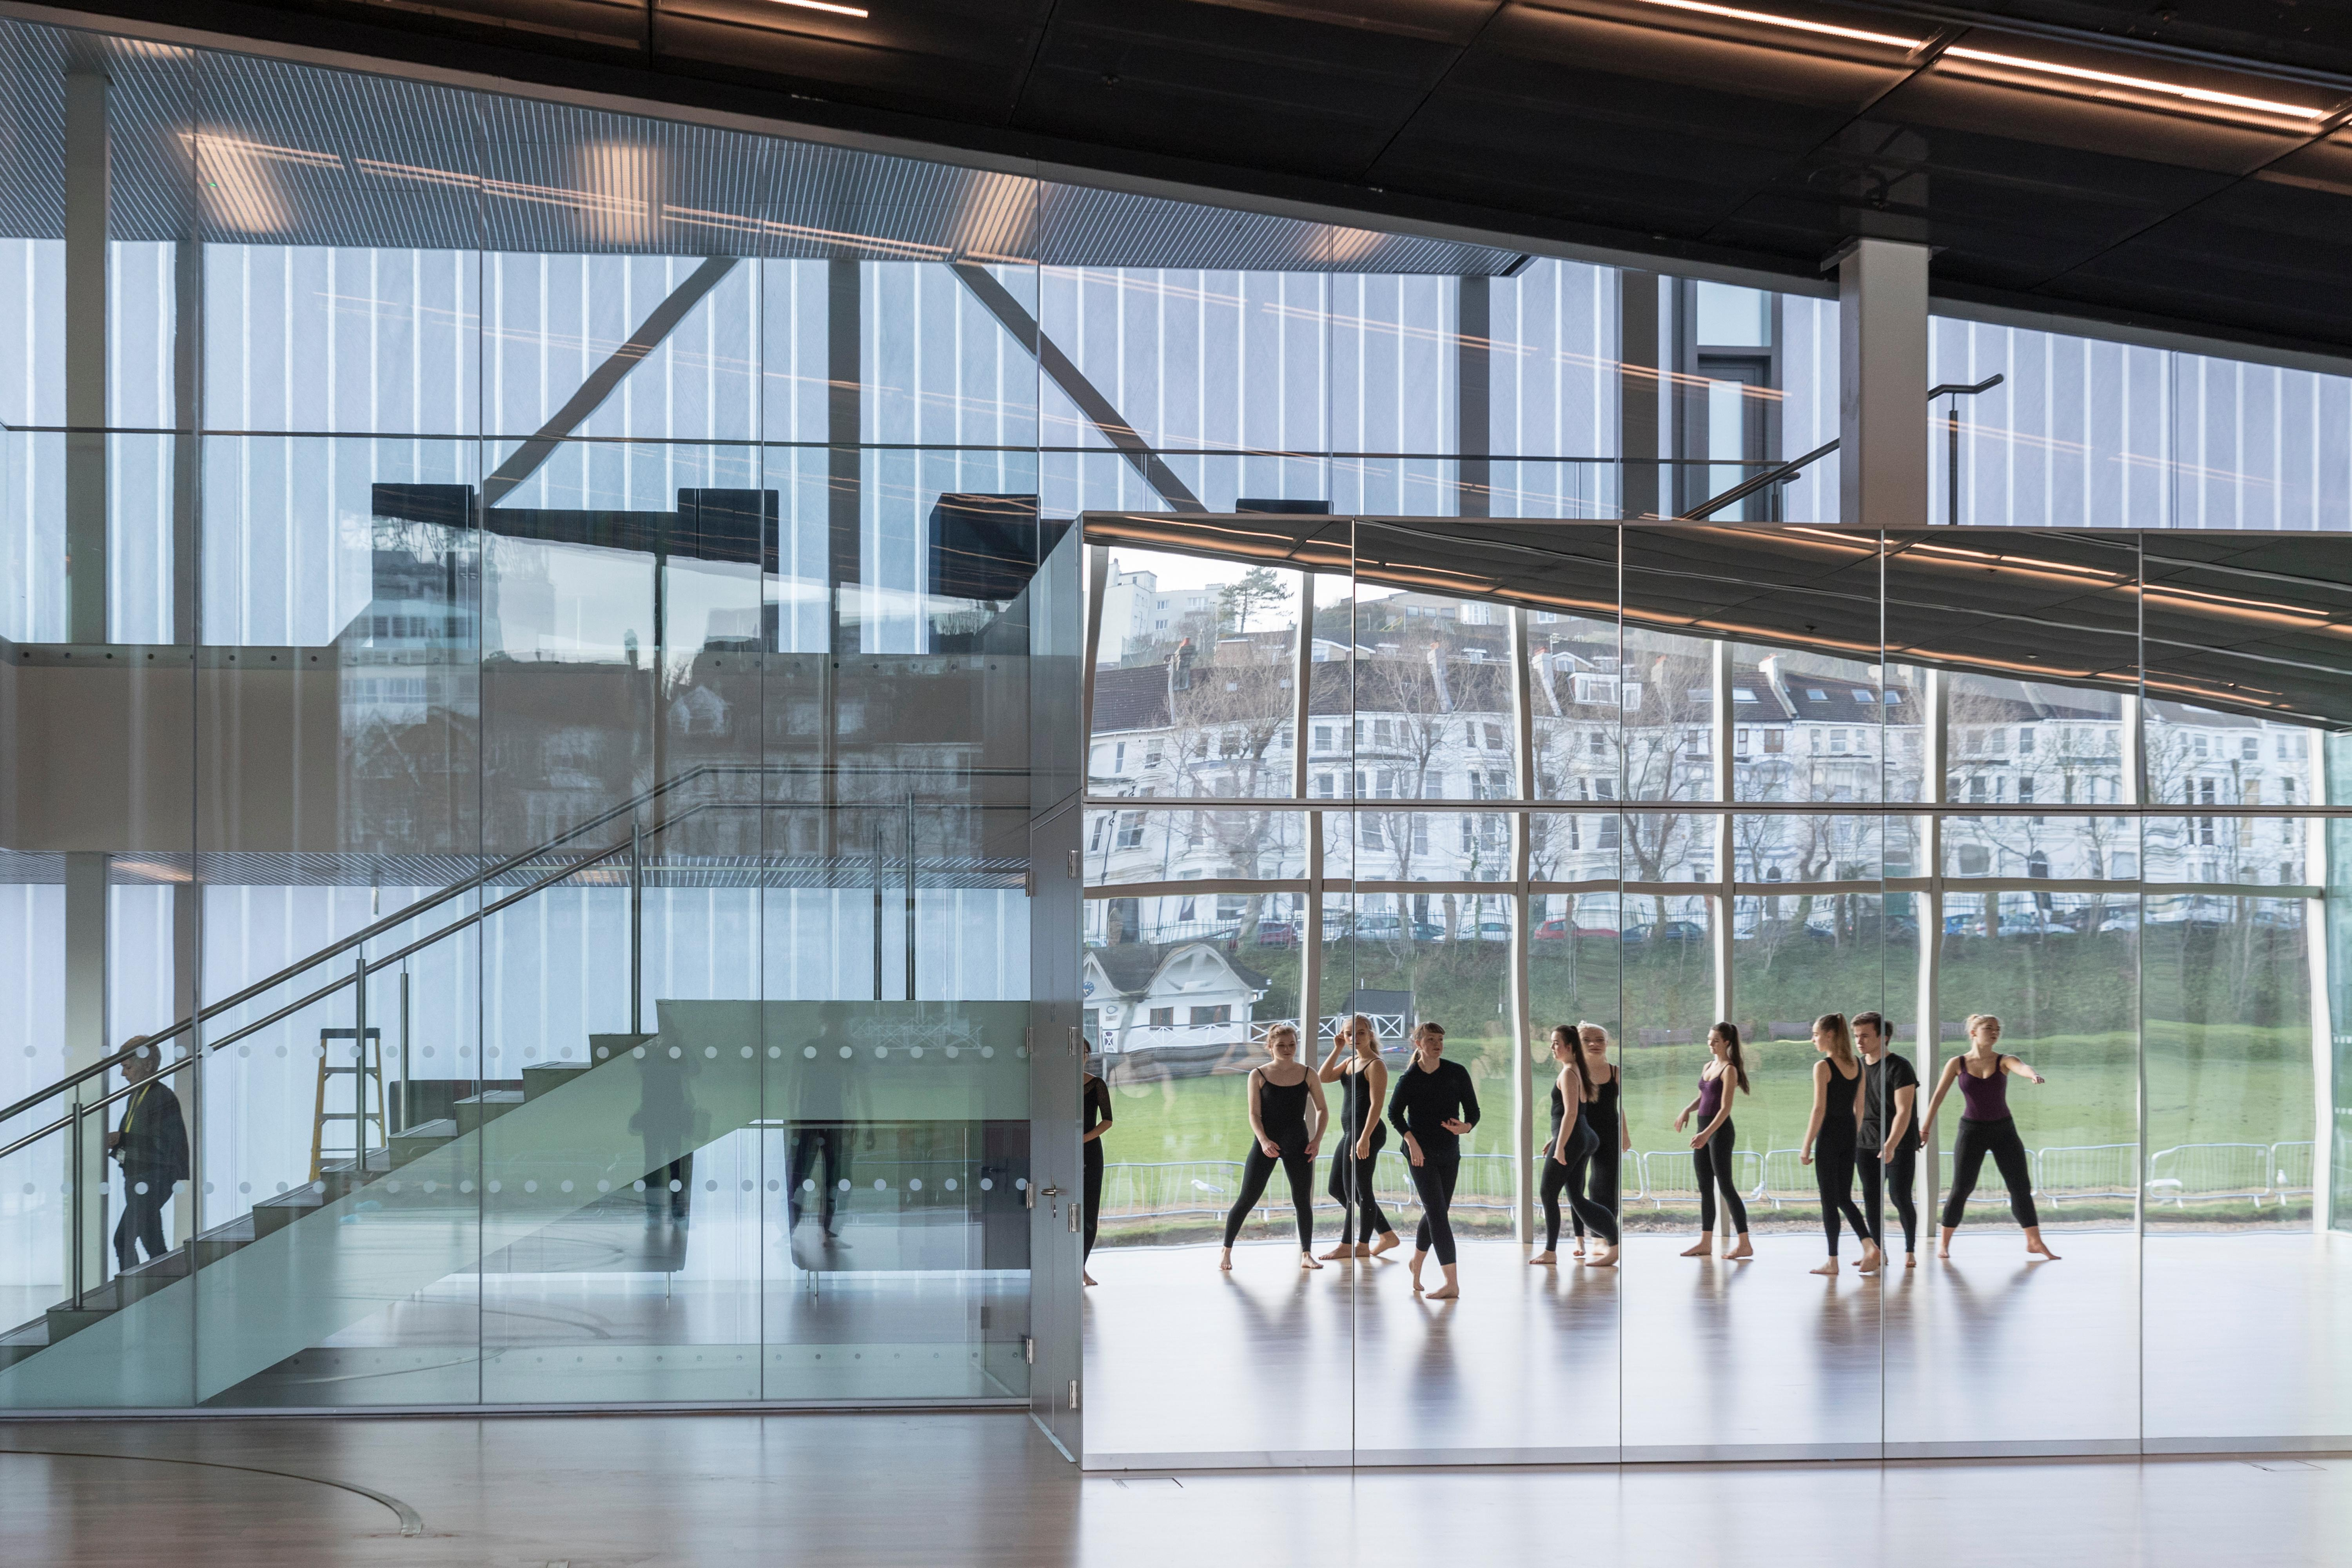 Brighton College's Sports and Science Centre review – Hogwarts meets George Lucas